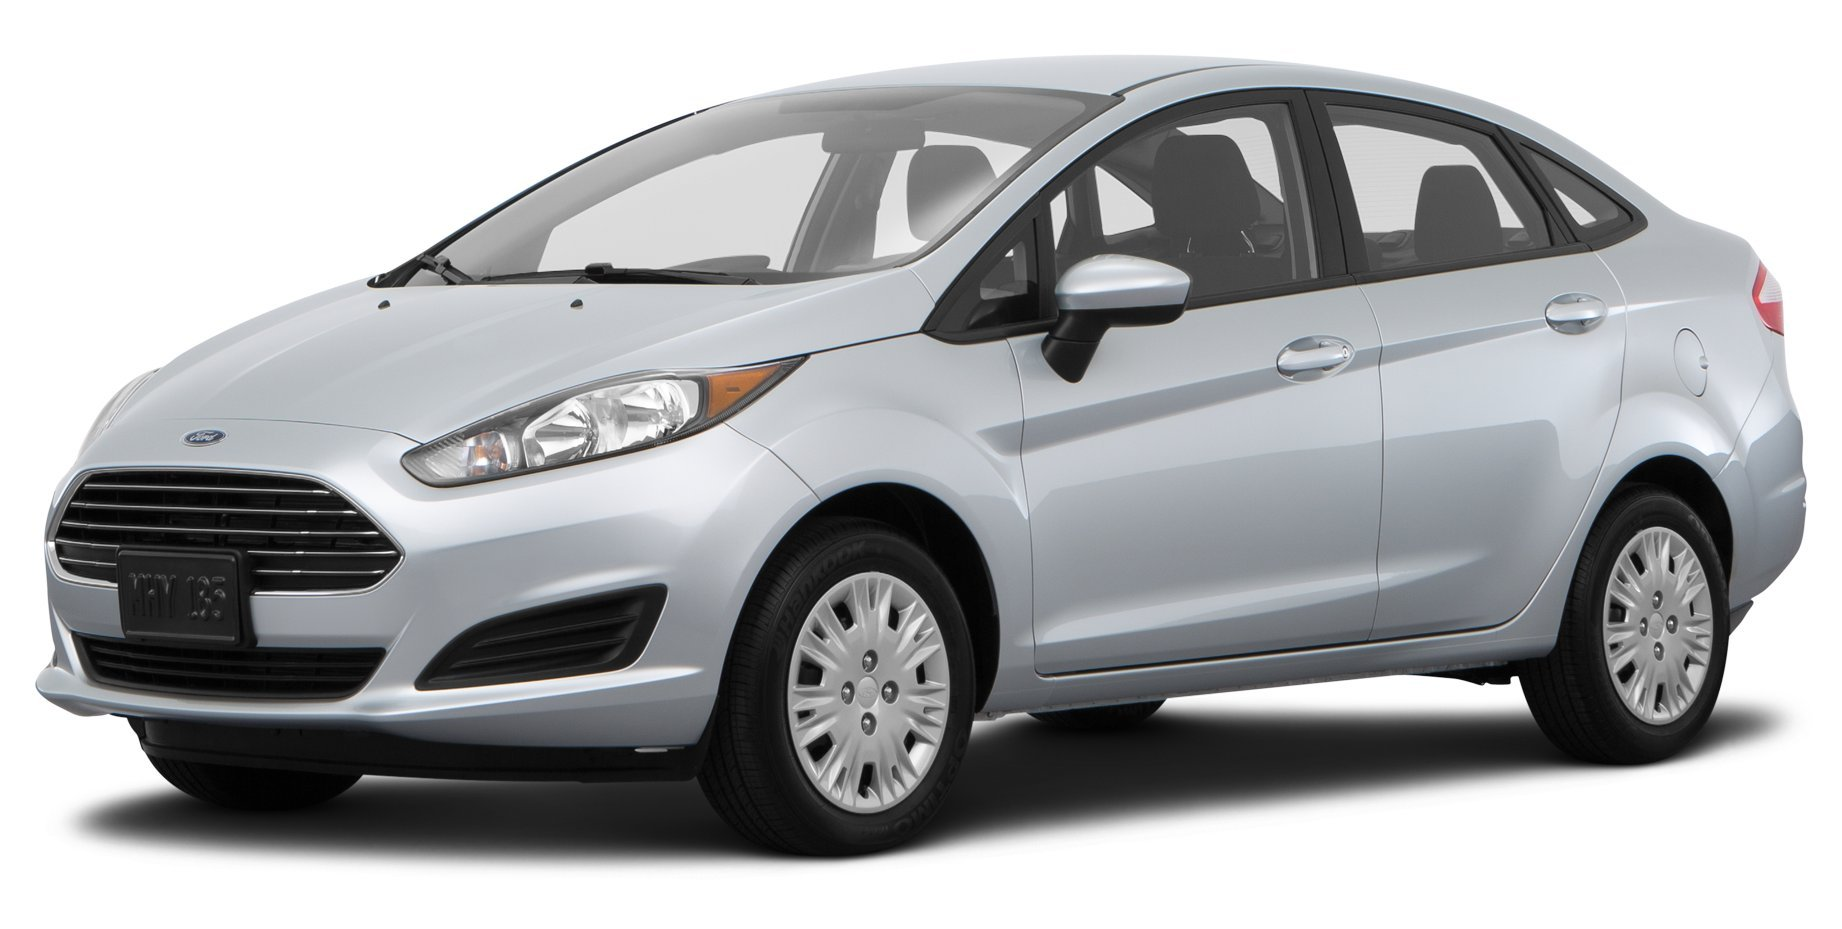 2016 ford fiesta reviews images and specs. Black Bedroom Furniture Sets. Home Design Ideas